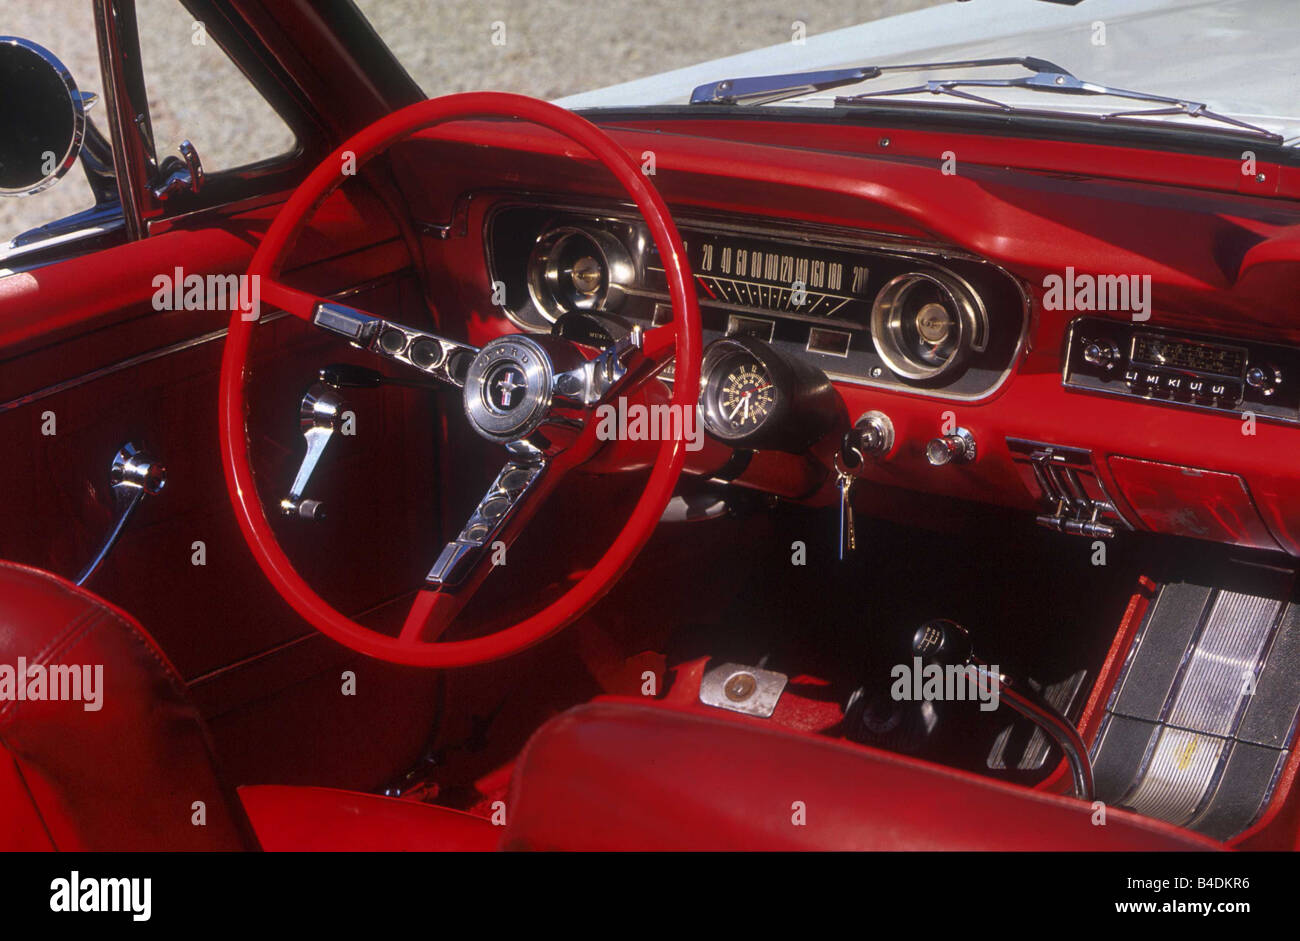 Ford 1965 Mustang >> Car, Ford Mustang, Convertible, model year 1965, white, Vintage Stock Photo: 19969914 - Alamy